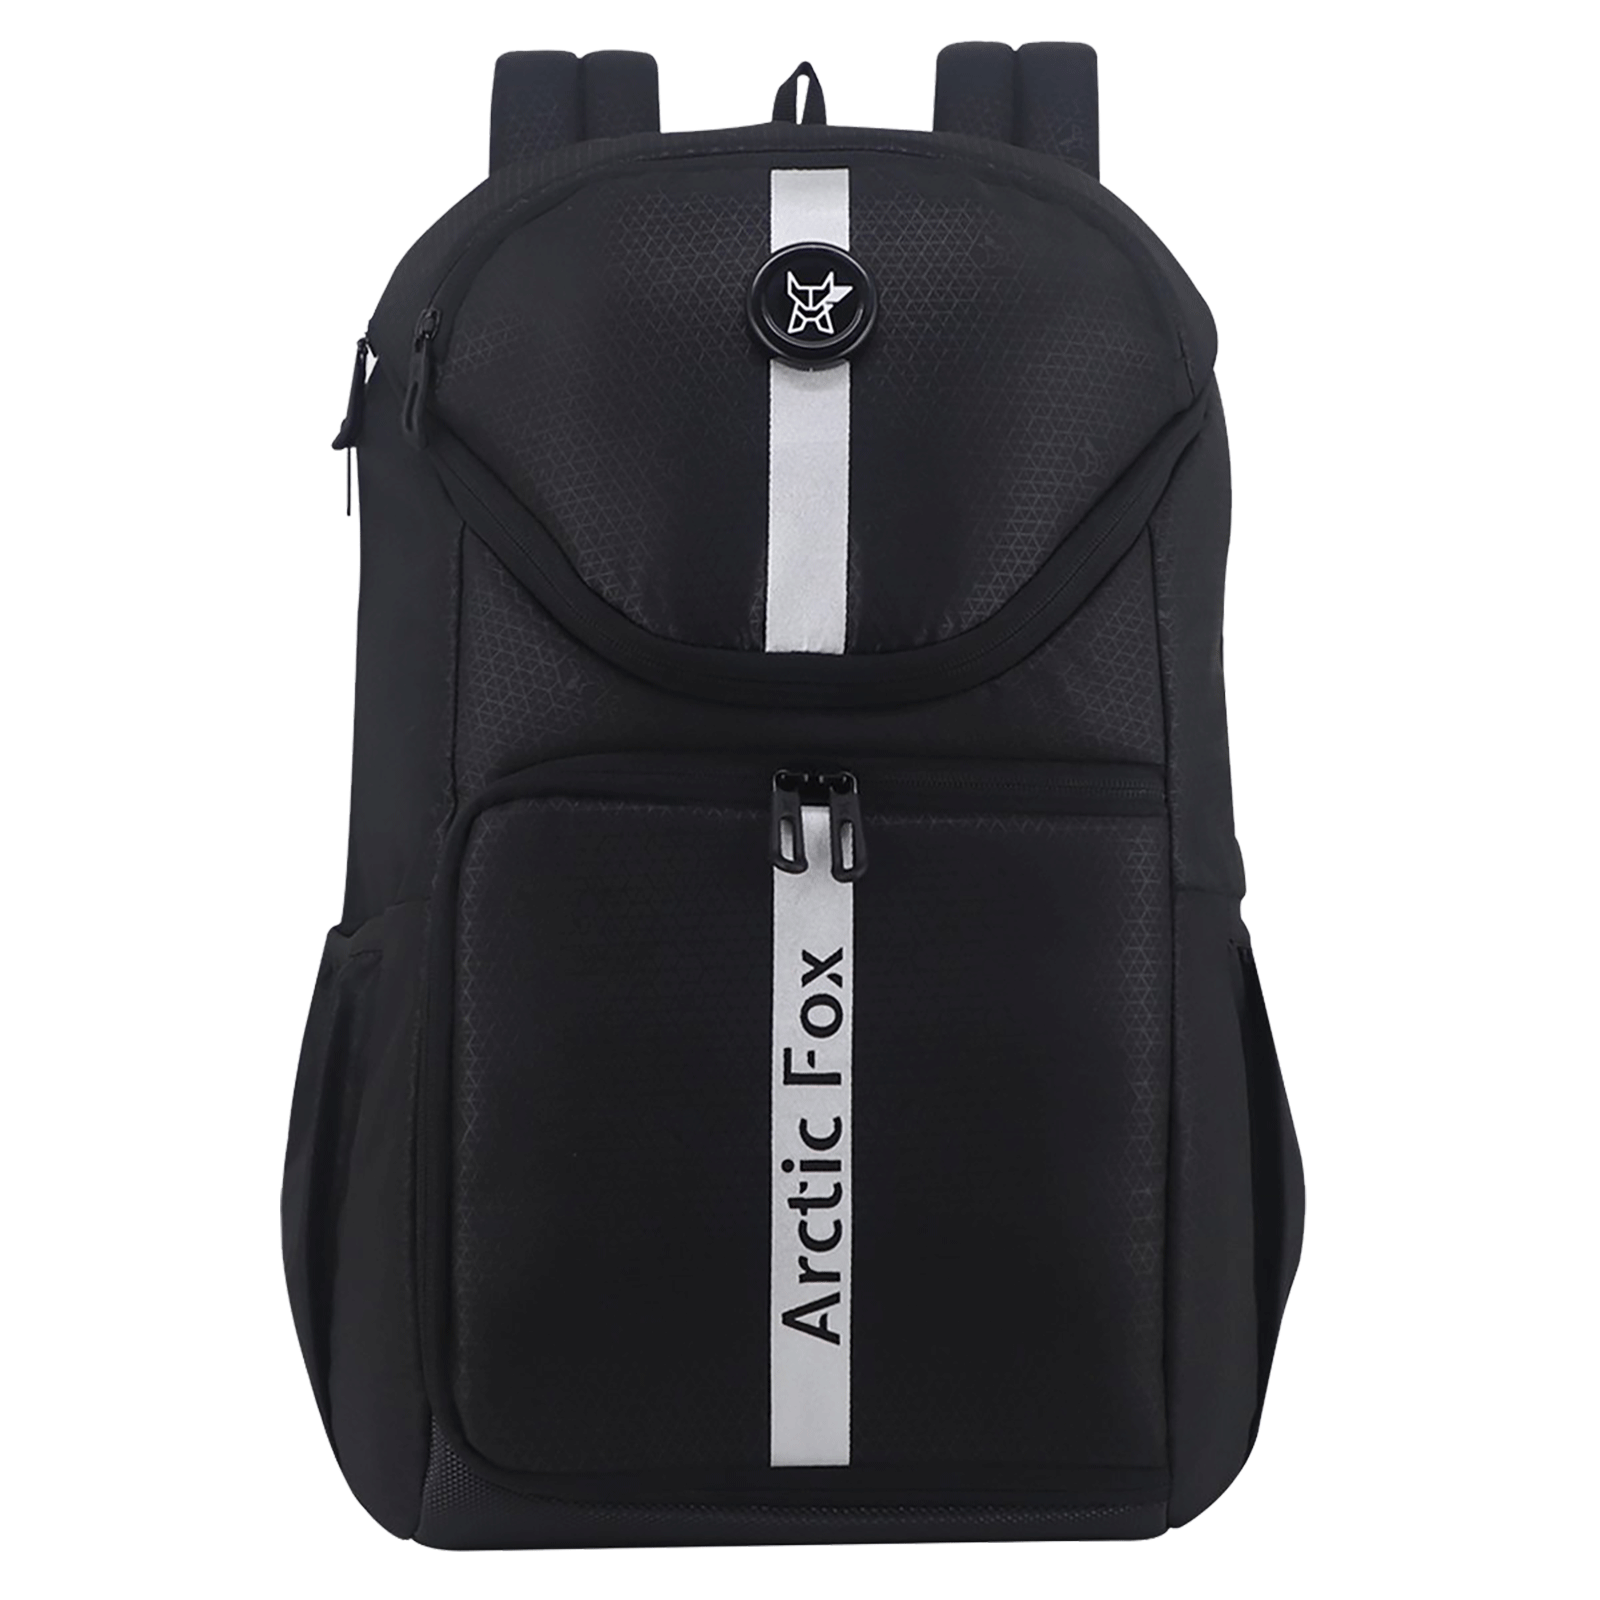 Arctic Fox Flash Polyester PU Coated Camera Backpack for Camera (15.5 Inch Laptop Compatible, FEXCMBJTBON198026, Jet Black)_1